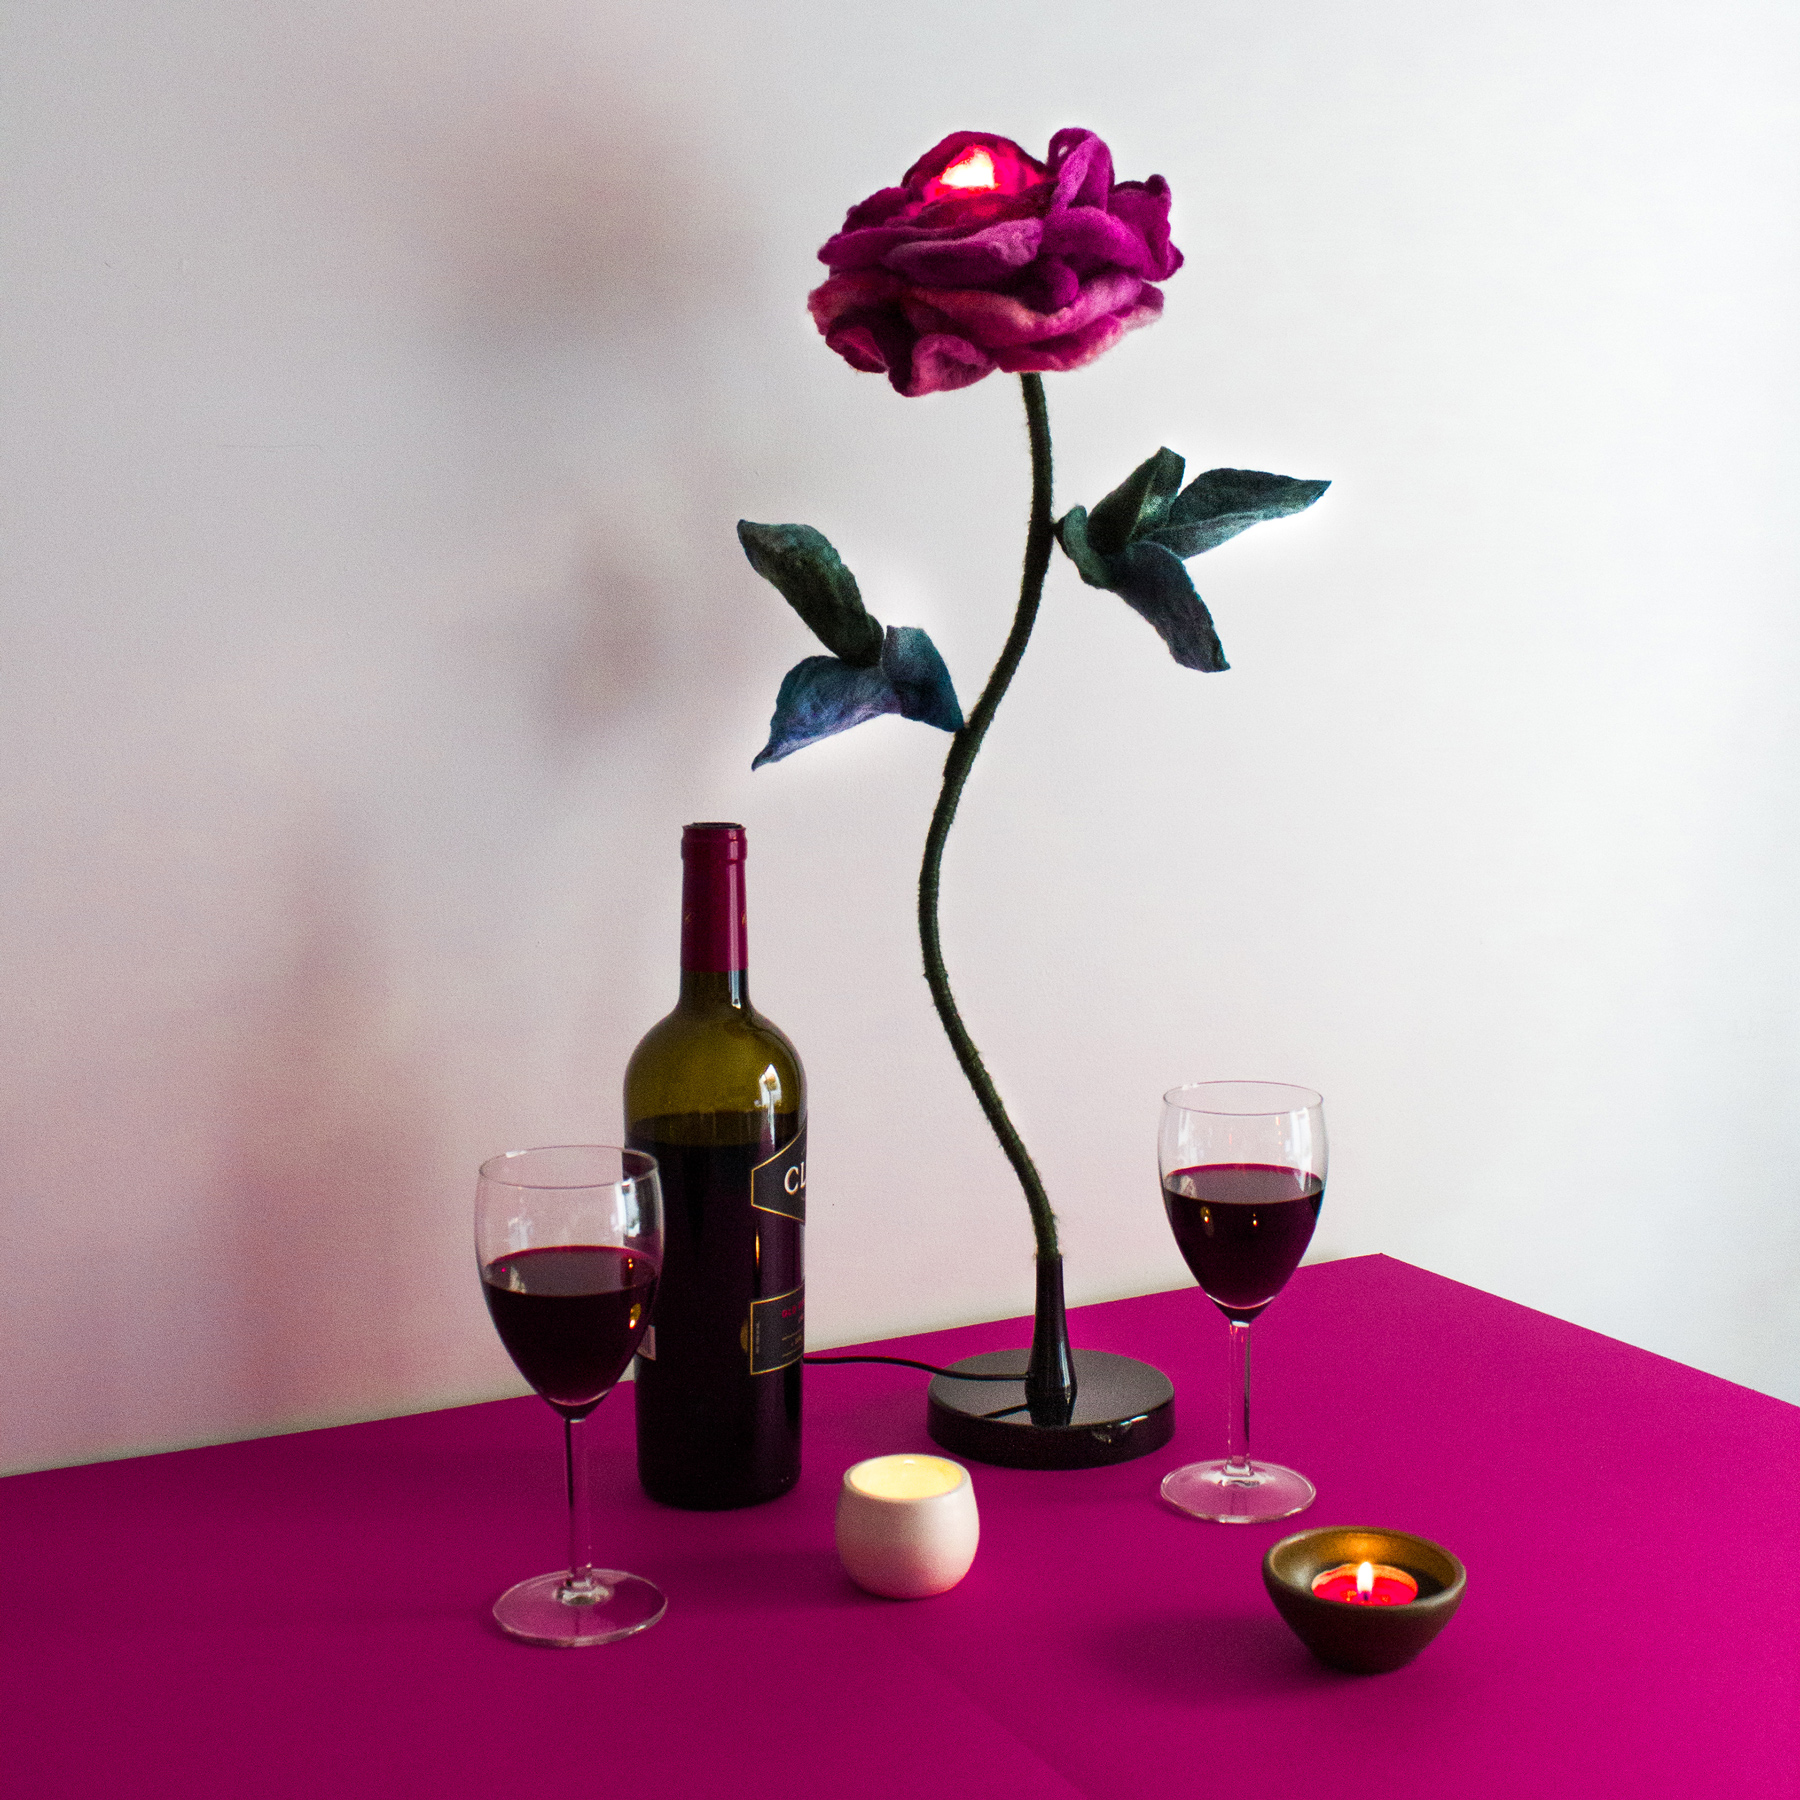 felt-flower-lamp_Wine-Rose_Adelya-Tumasyeva_1.jpg